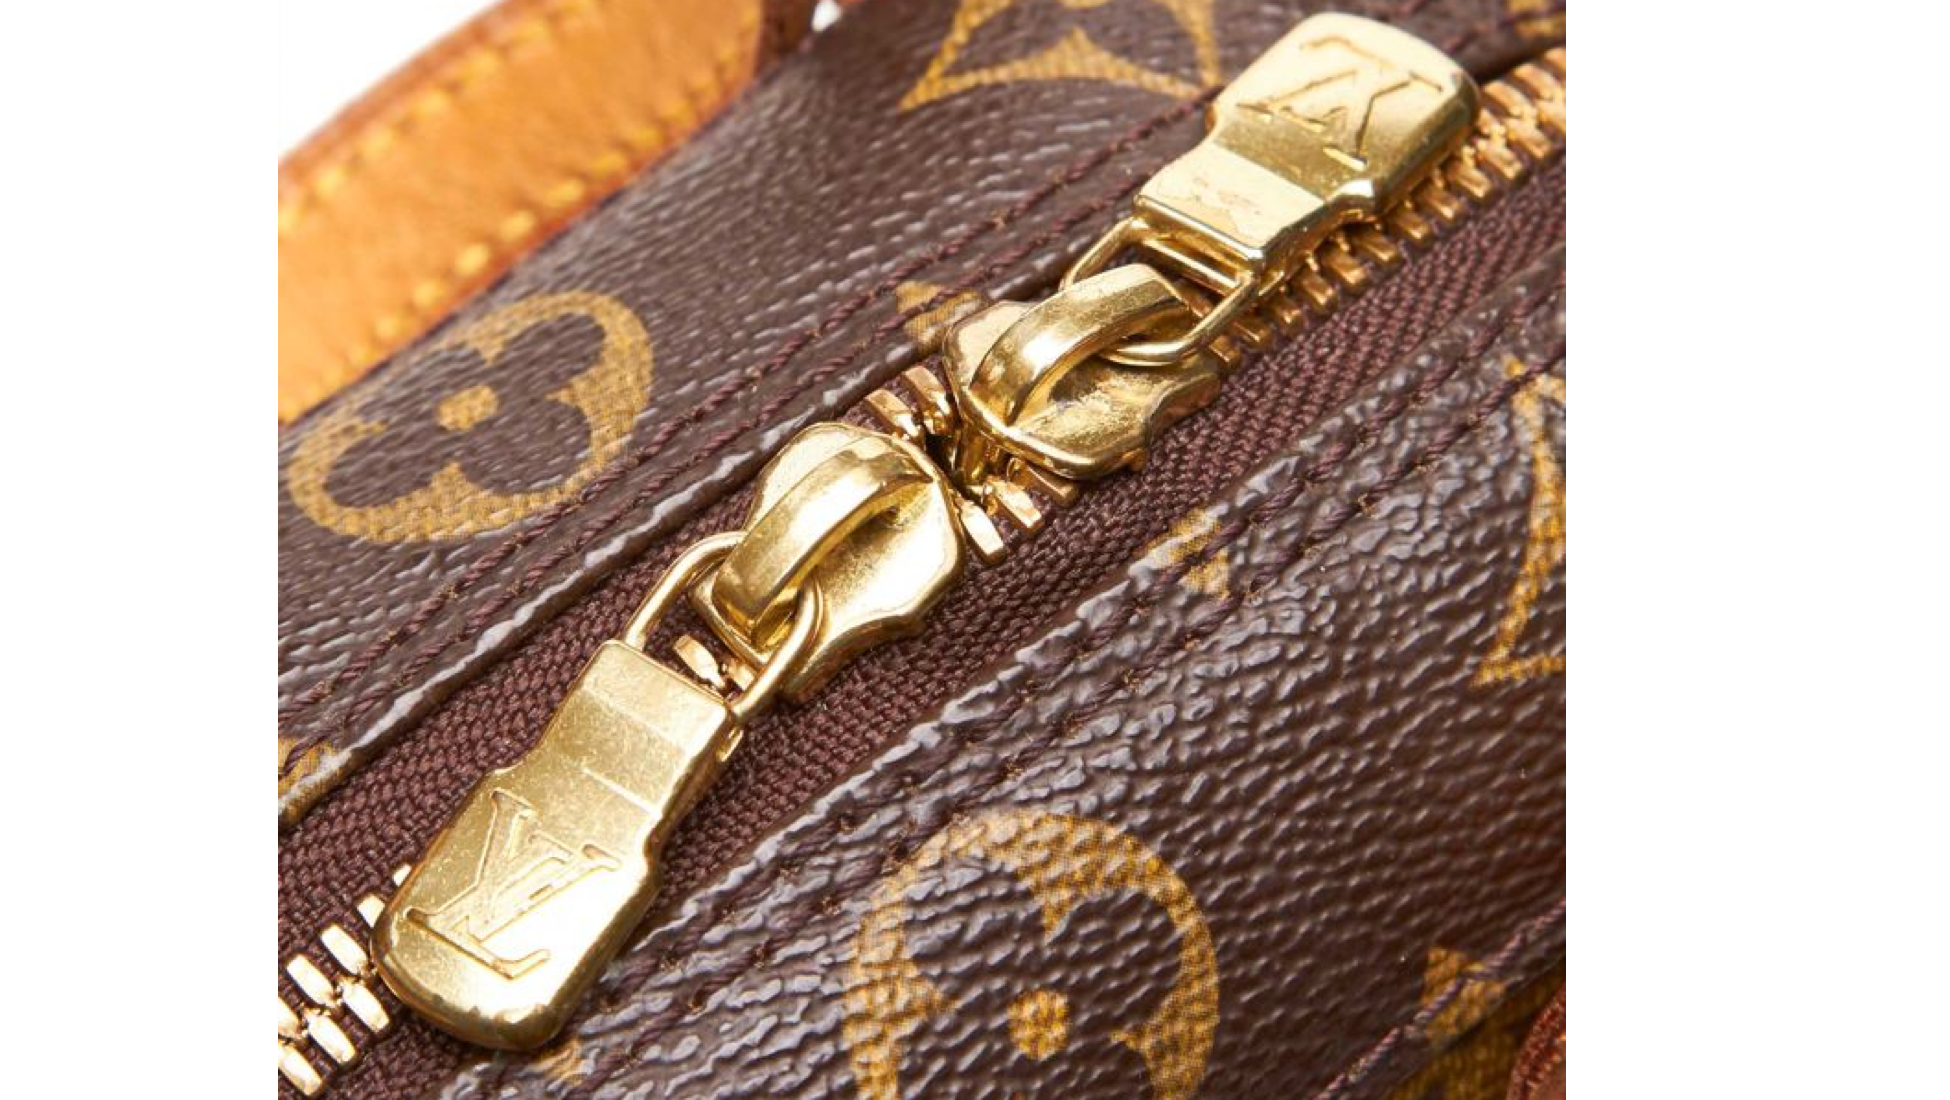 Experts Guide To Buying An Authentic Louis Vuitton Handbag >> Expert S Guide To Buying An Authentic Louis Vuitton Handbag Catawiki